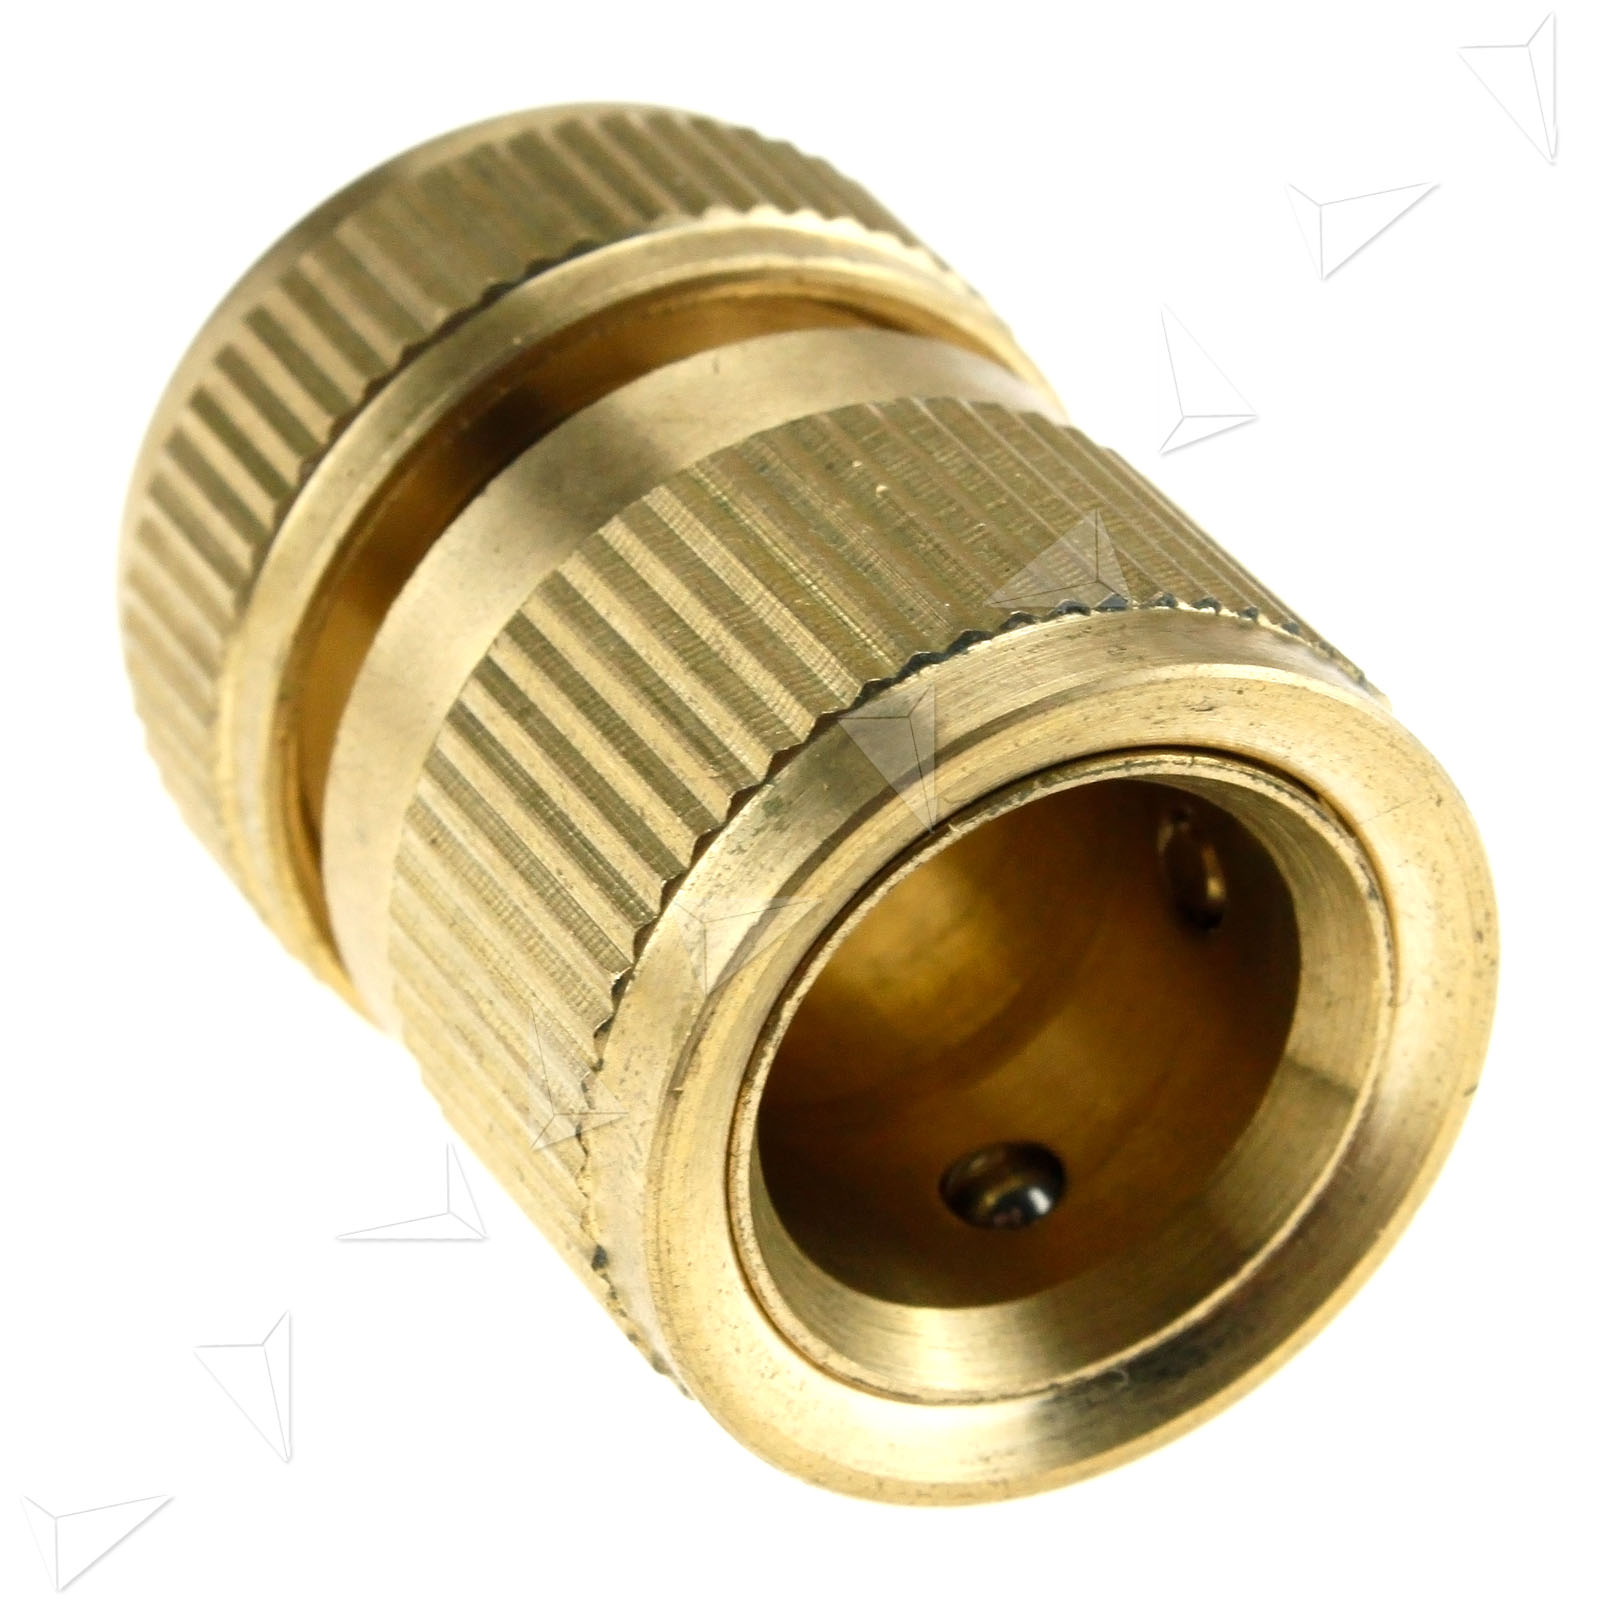 New 1 2 Quick Connect Female Hose Connector Solid Brass For Garden Outdoor Ebay